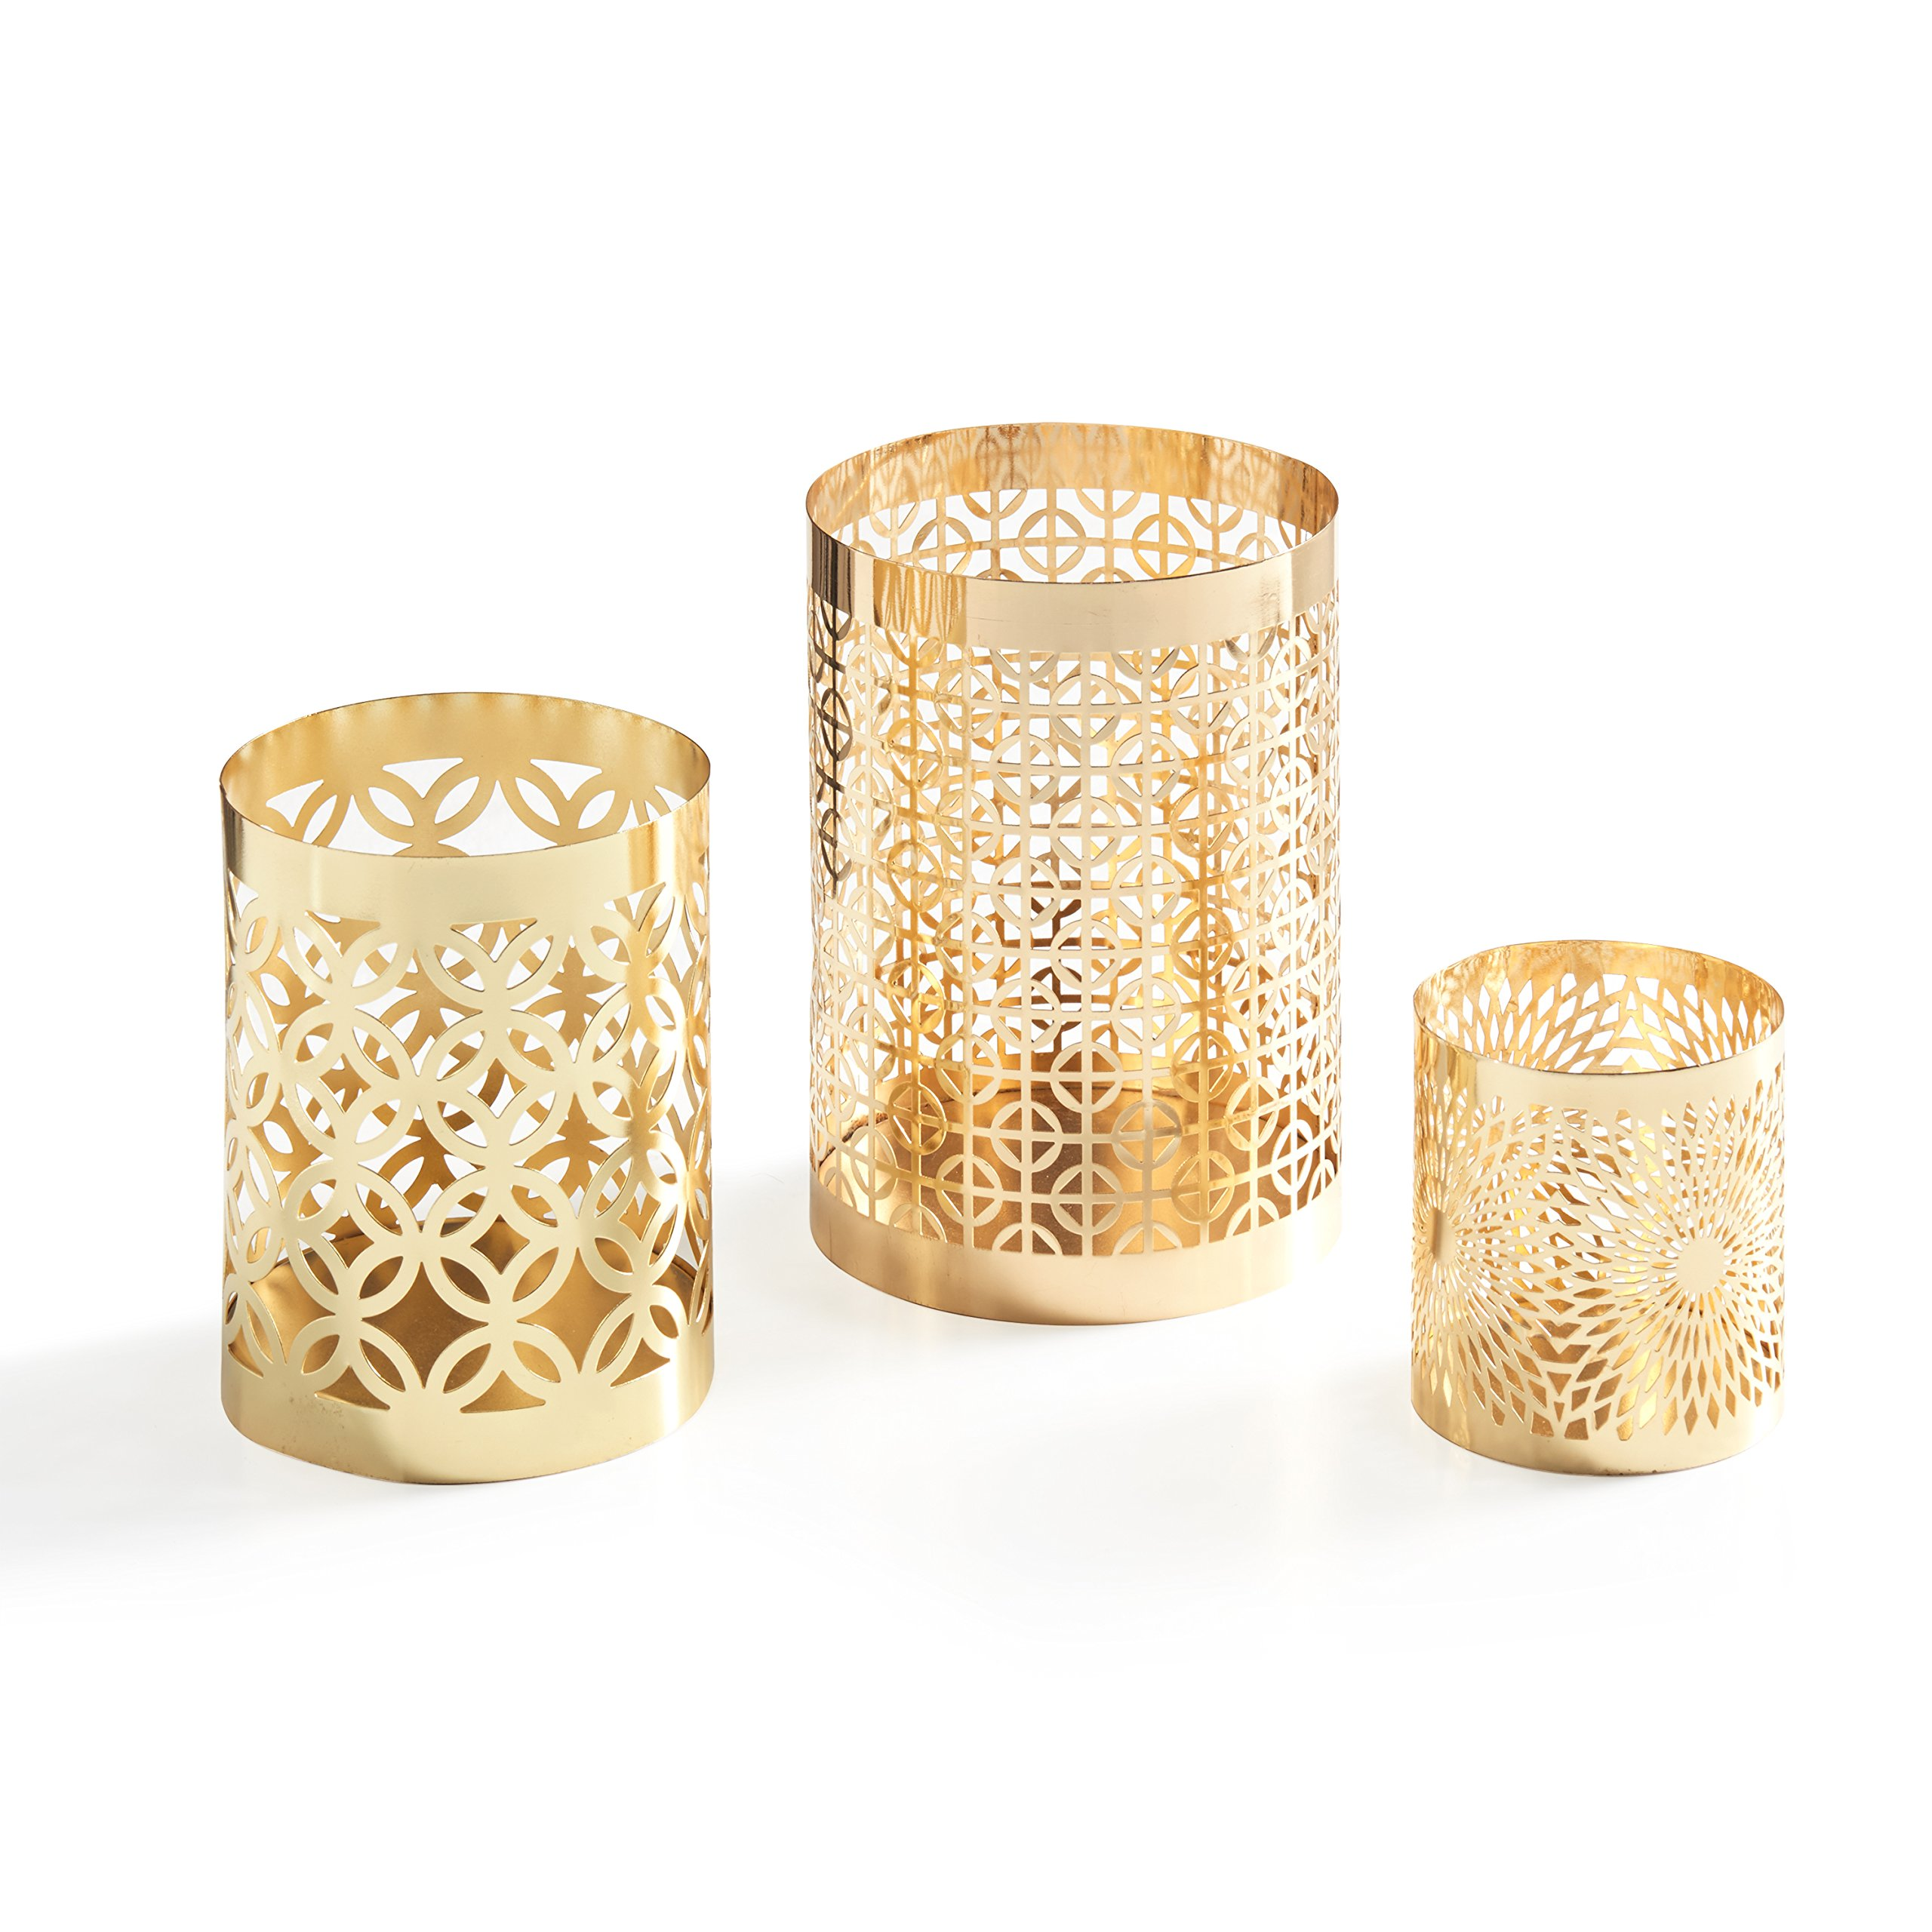 Danya B. KF1608GLD Home Accents - Metal Filigree Hurricane Candle Holders - Various Sizes and Patterns (Set of 3) - Gold